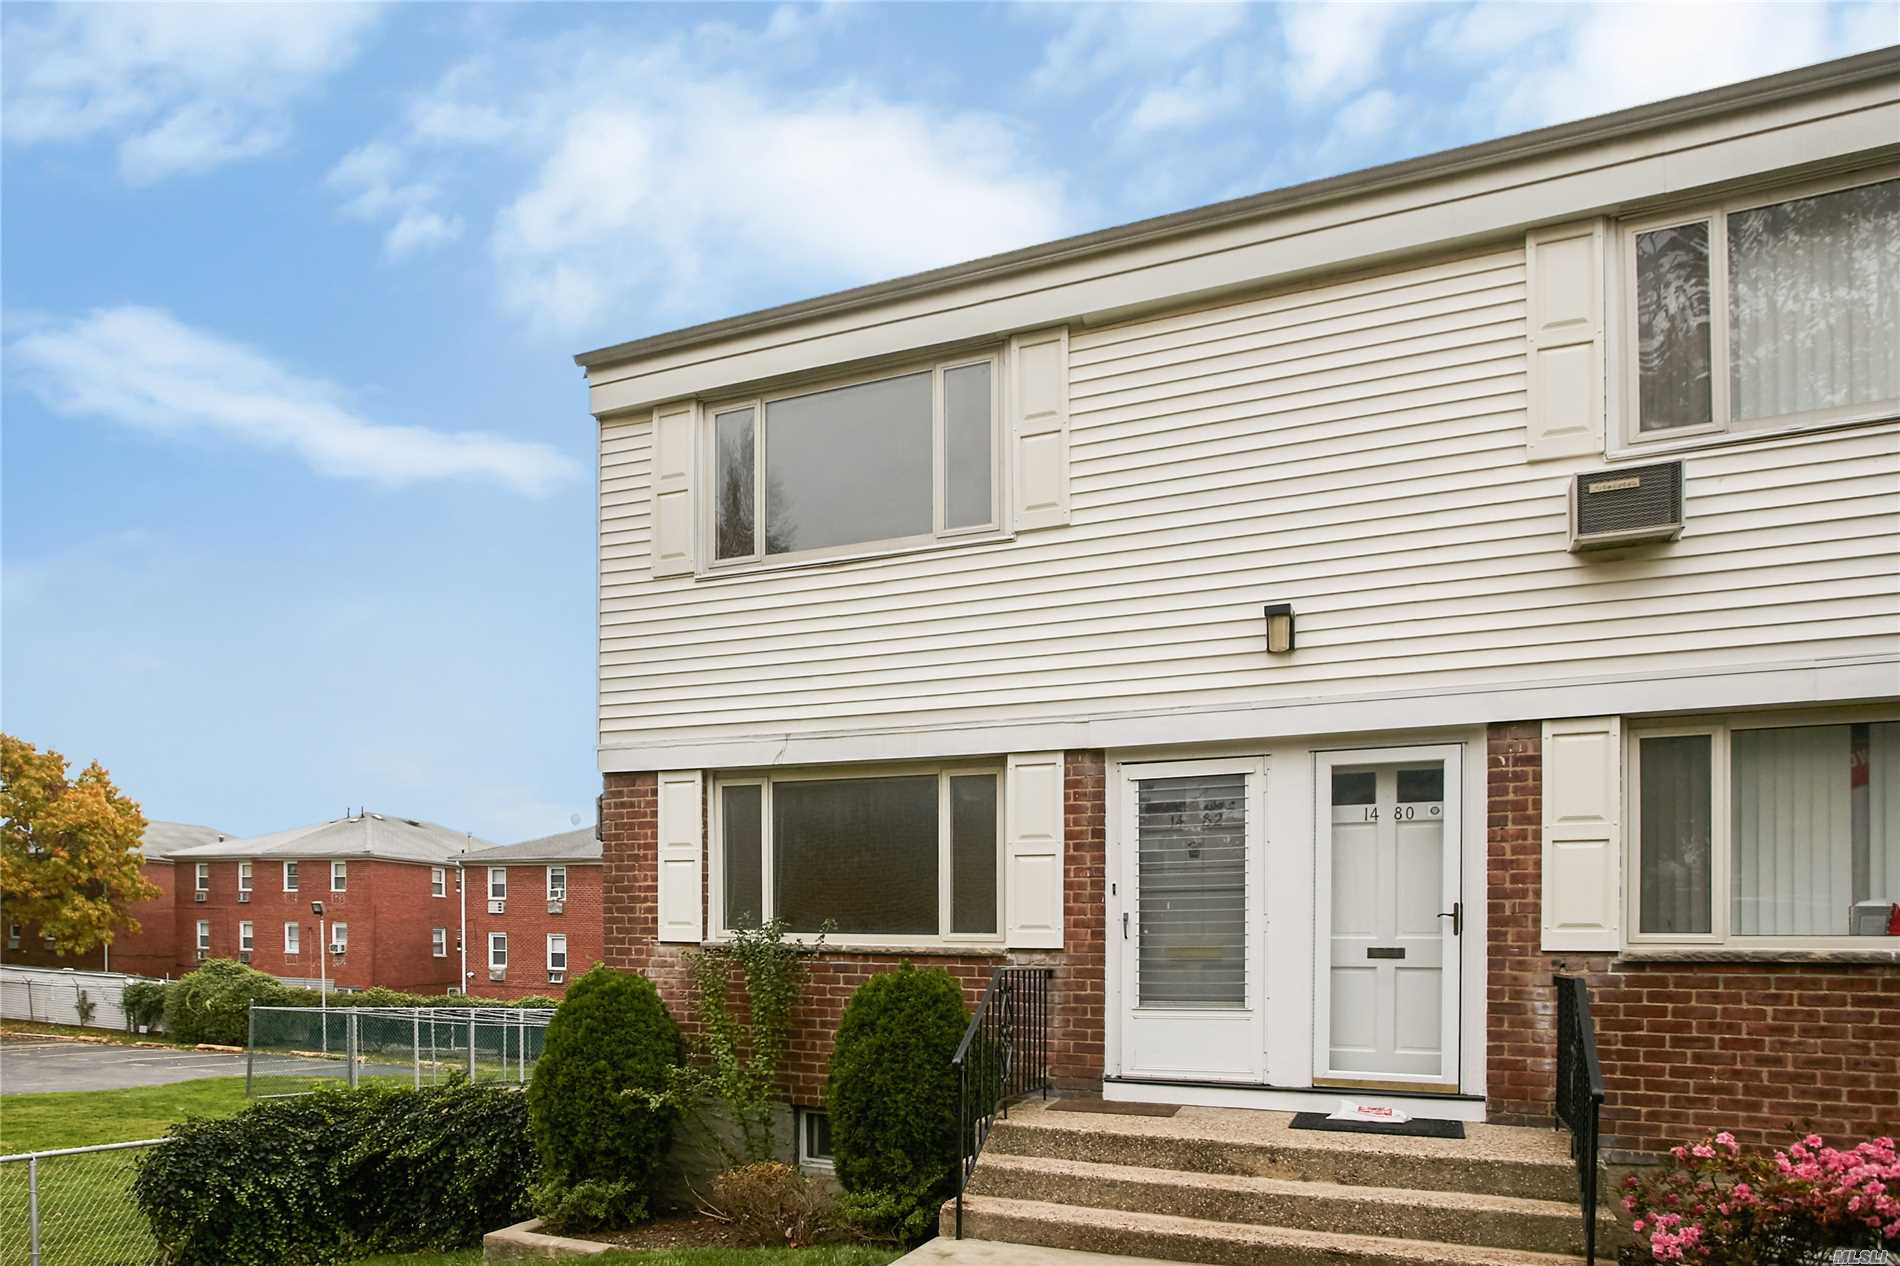 Rare Bay Terrace Duplex Corner Unit In Section 2. This Co-Op Is Set Back From Street Level, Providing A Quiet Space. Unit Features Hardwood Floors, Stainless Steel Appliances, Renovated Bath With Walk-In Shower, Master Bedroom With Walk-In-Closet And Large Attic For Extra-Storage. Easy Access To Full Laundry Room, Community Storage, And Parking. Maintenance Includes Electric, Heat, Water, Snow/Garbage Removal, Property Tax, And On-Call Service. Buses To Manh - Qm2 & Qm32 Right Across Street.